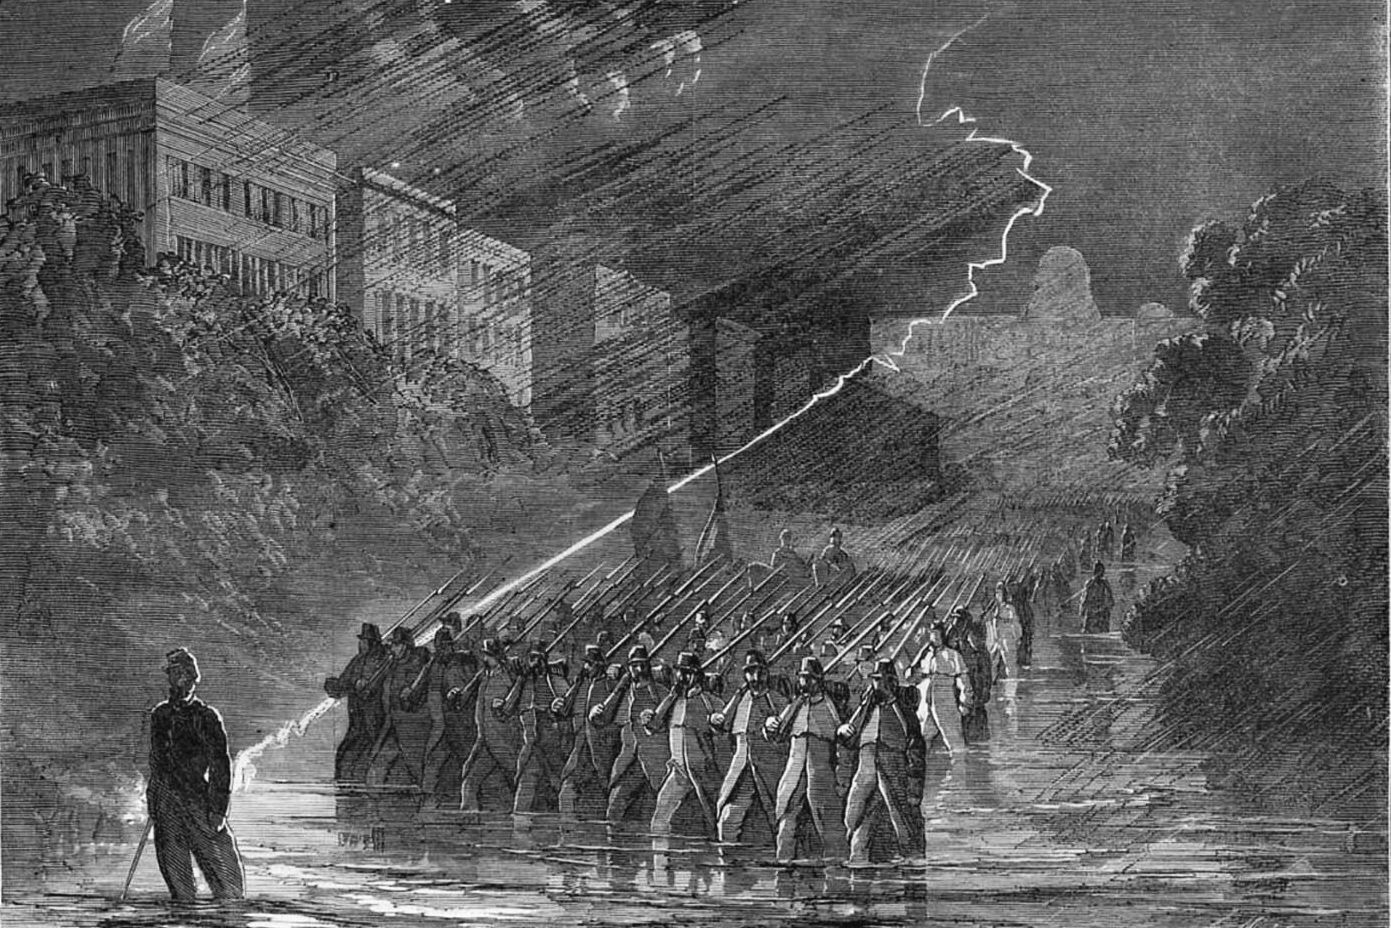 Julia Ward Howe and her group of Boston dignitaries visited with troops from the Massachusetts 14th Regiment, show in a Harper's Weekly engraving marching down Pennsylvania Avenue in a lightning storm.